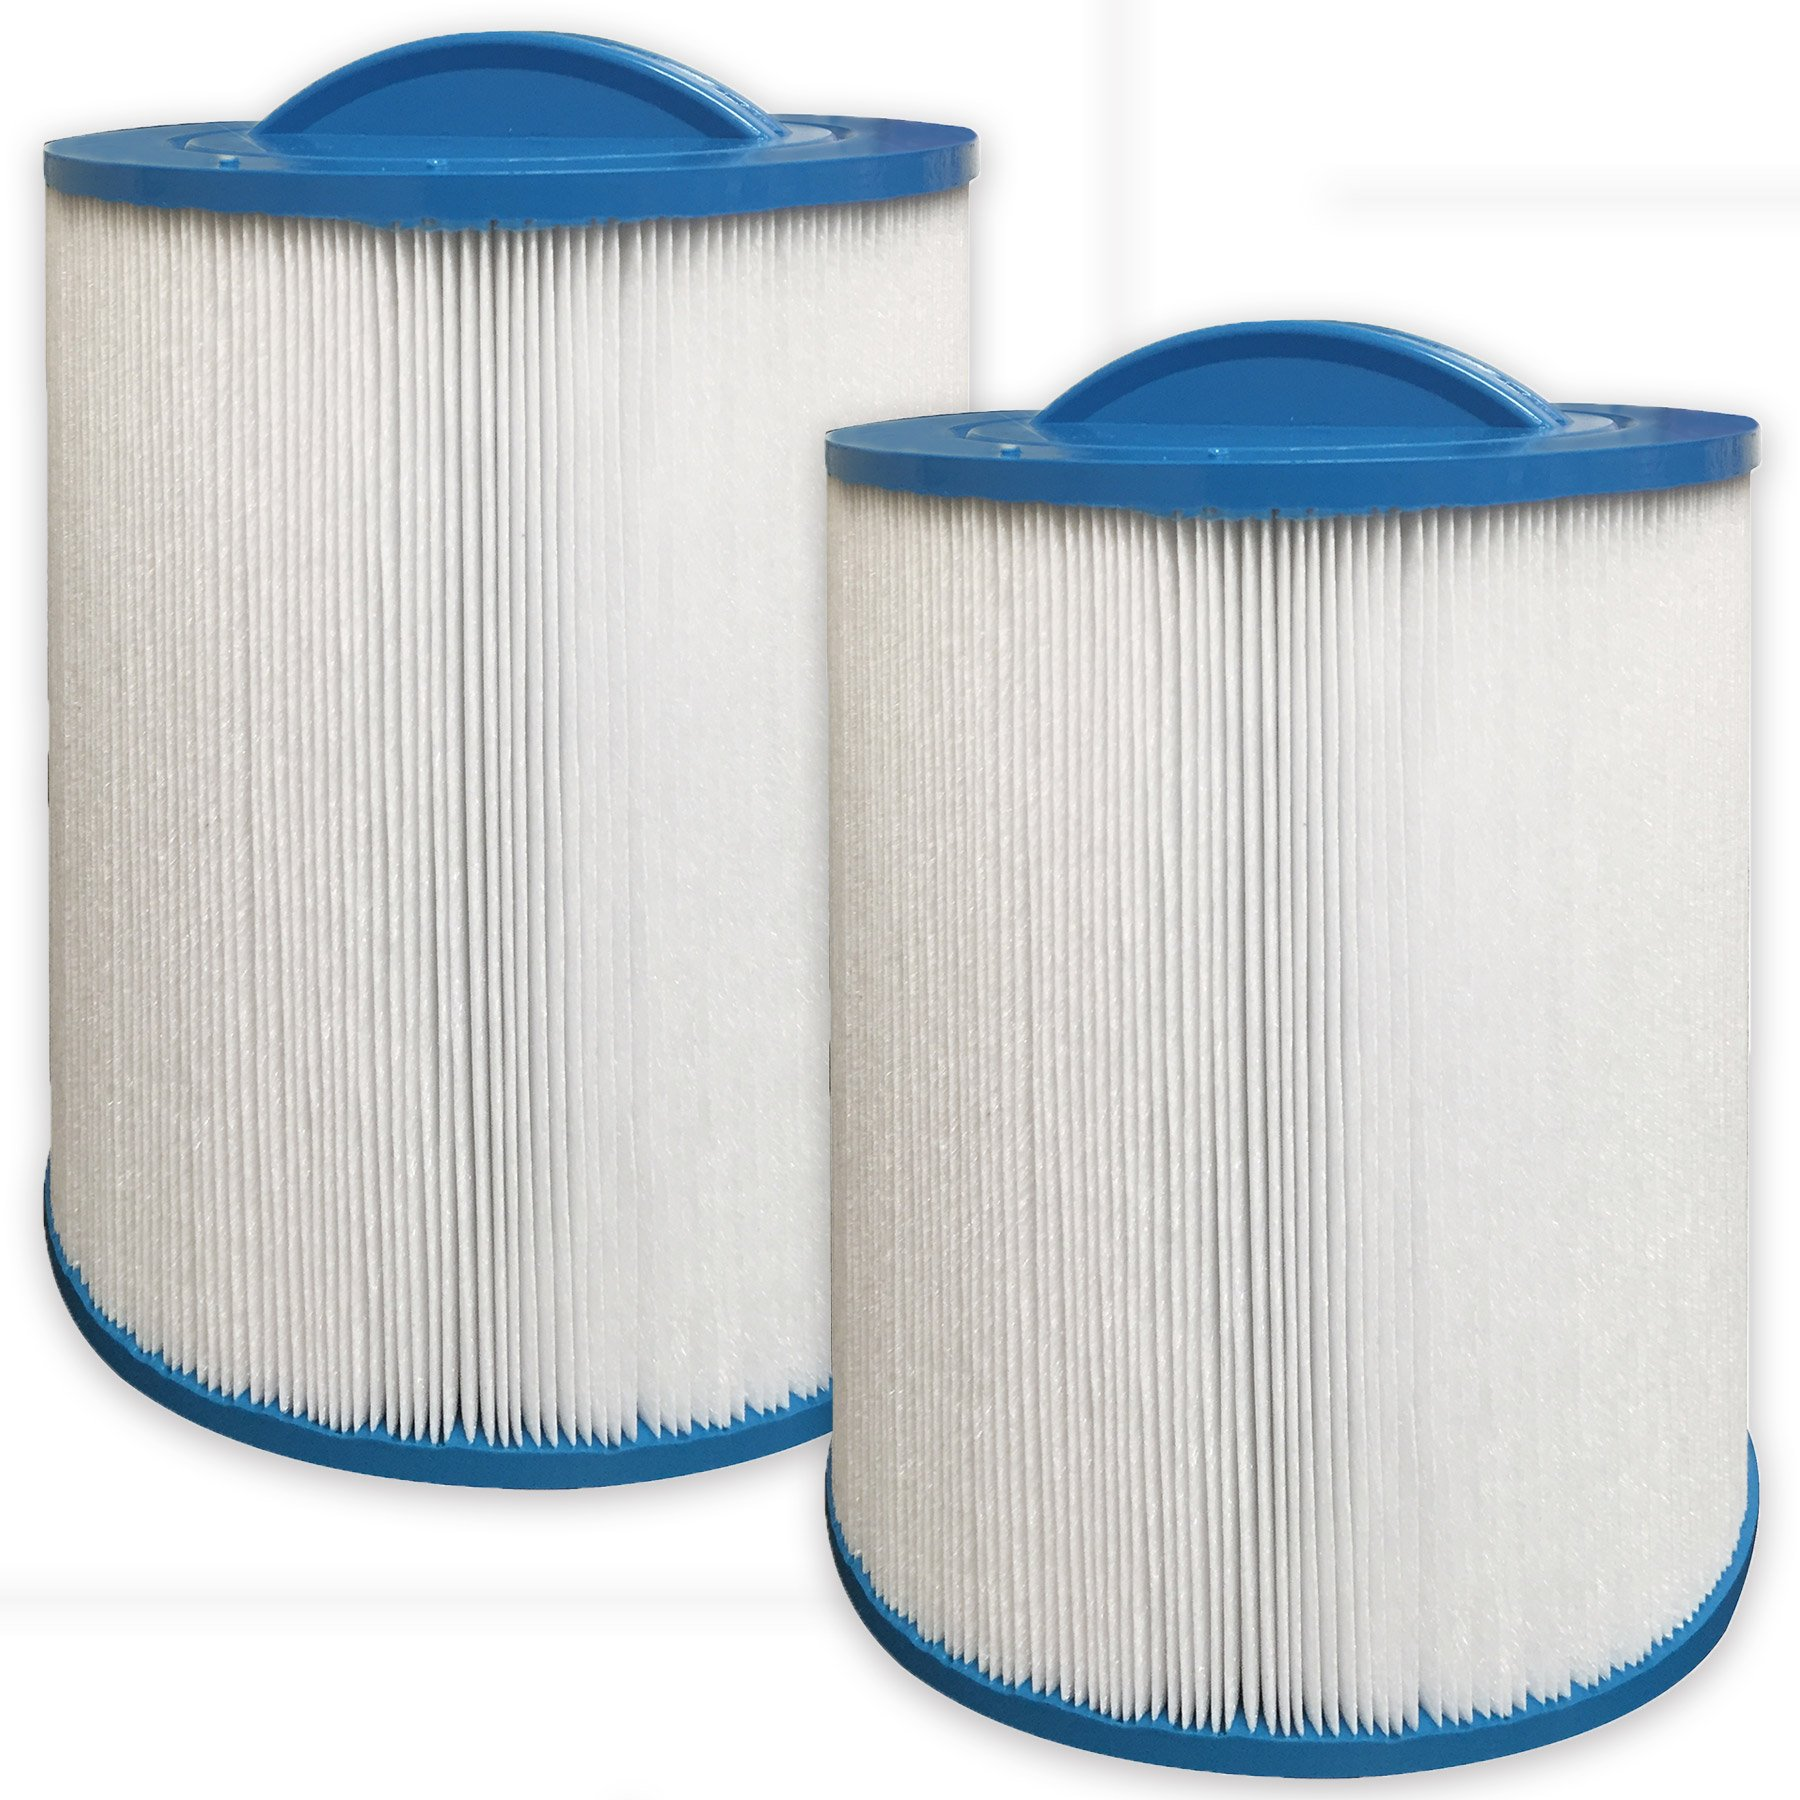 2 pack Guardian Spa Filters- Replaces Pleatco PAS50SV-F2M, Unicel 6CH-502, Filbur FC-0311 - Fits Artesian, Majestic Spas by Guardian Filtration Products